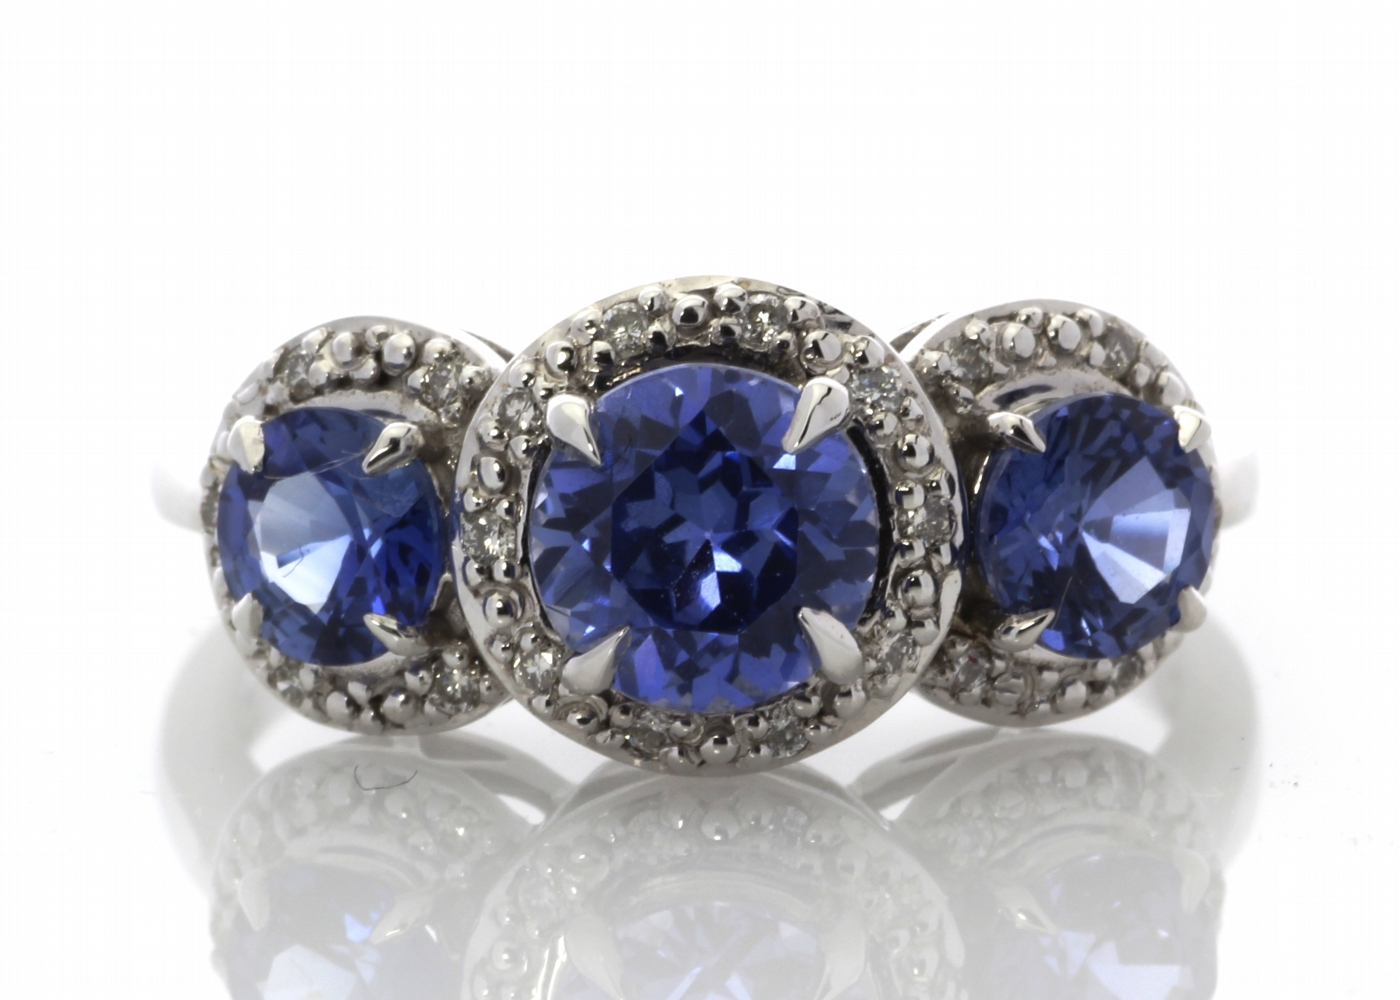 Lot 61 - 9ct White Gold Created Ceylon Sapphire And Diamond Ring